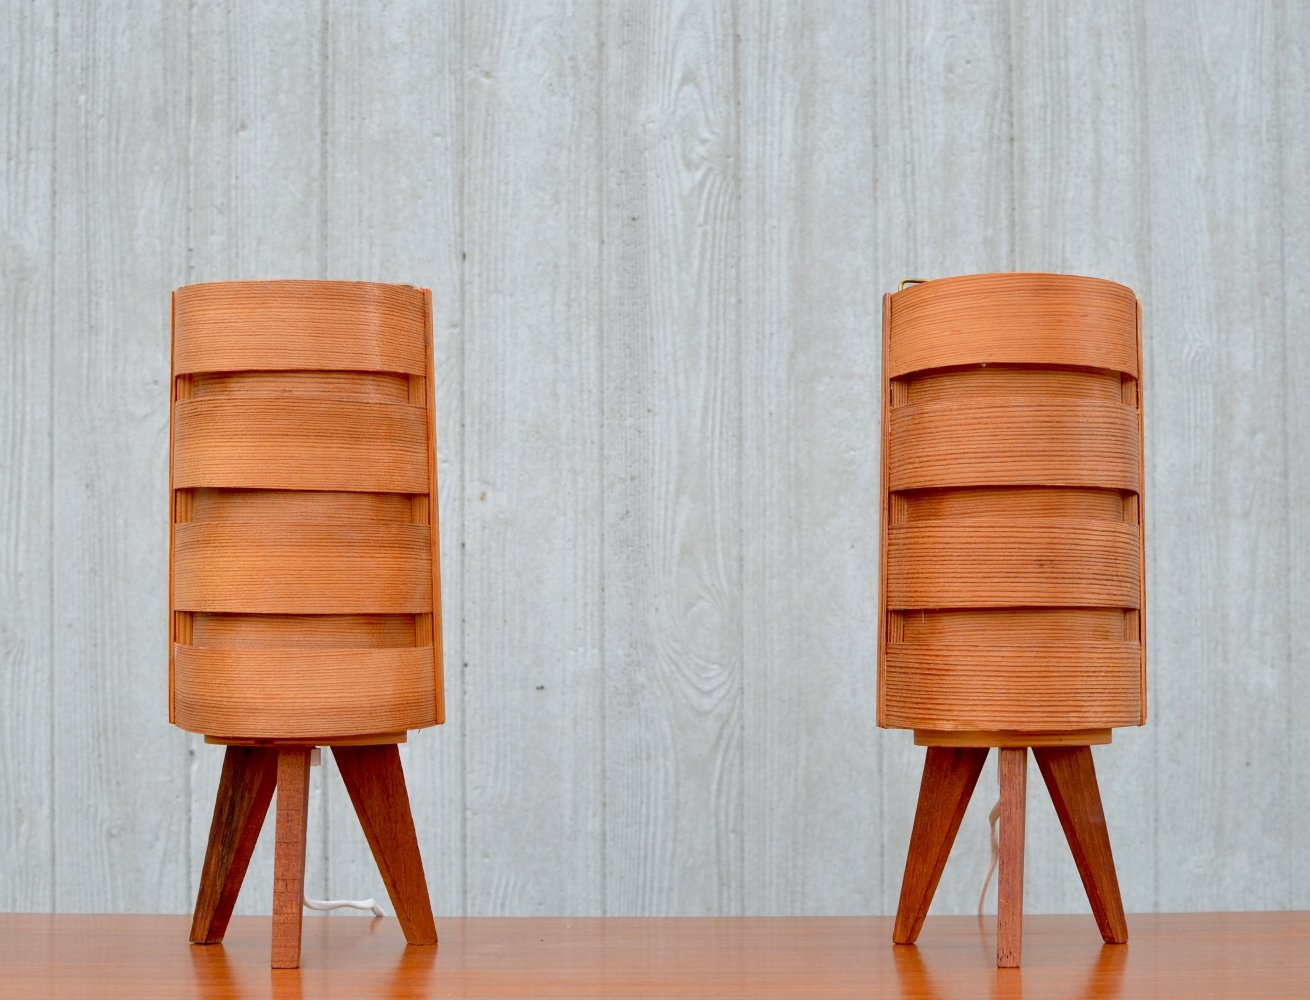 Mid-century Pine desk lamps by Hans Agne Jakobsson for AB Ellysett, Sweden